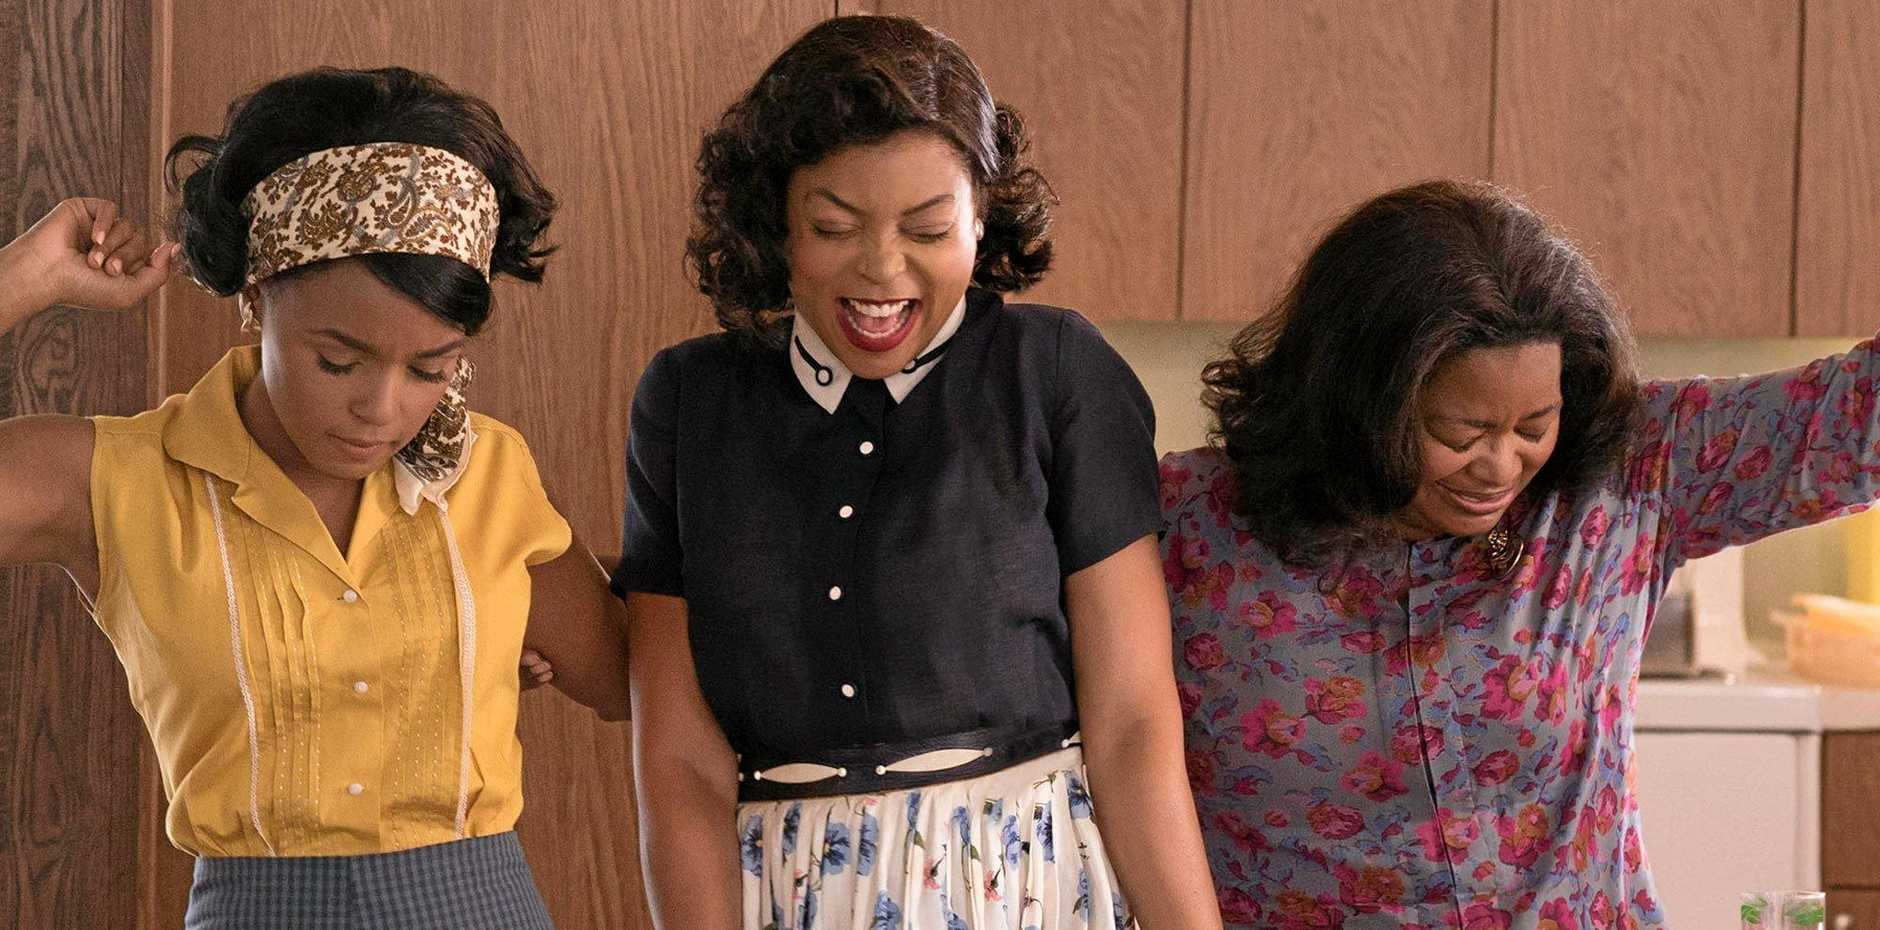 HIDDEN FIGURES: A movie based on the untold true story of the women behind one of the greatest achievements of mankind.